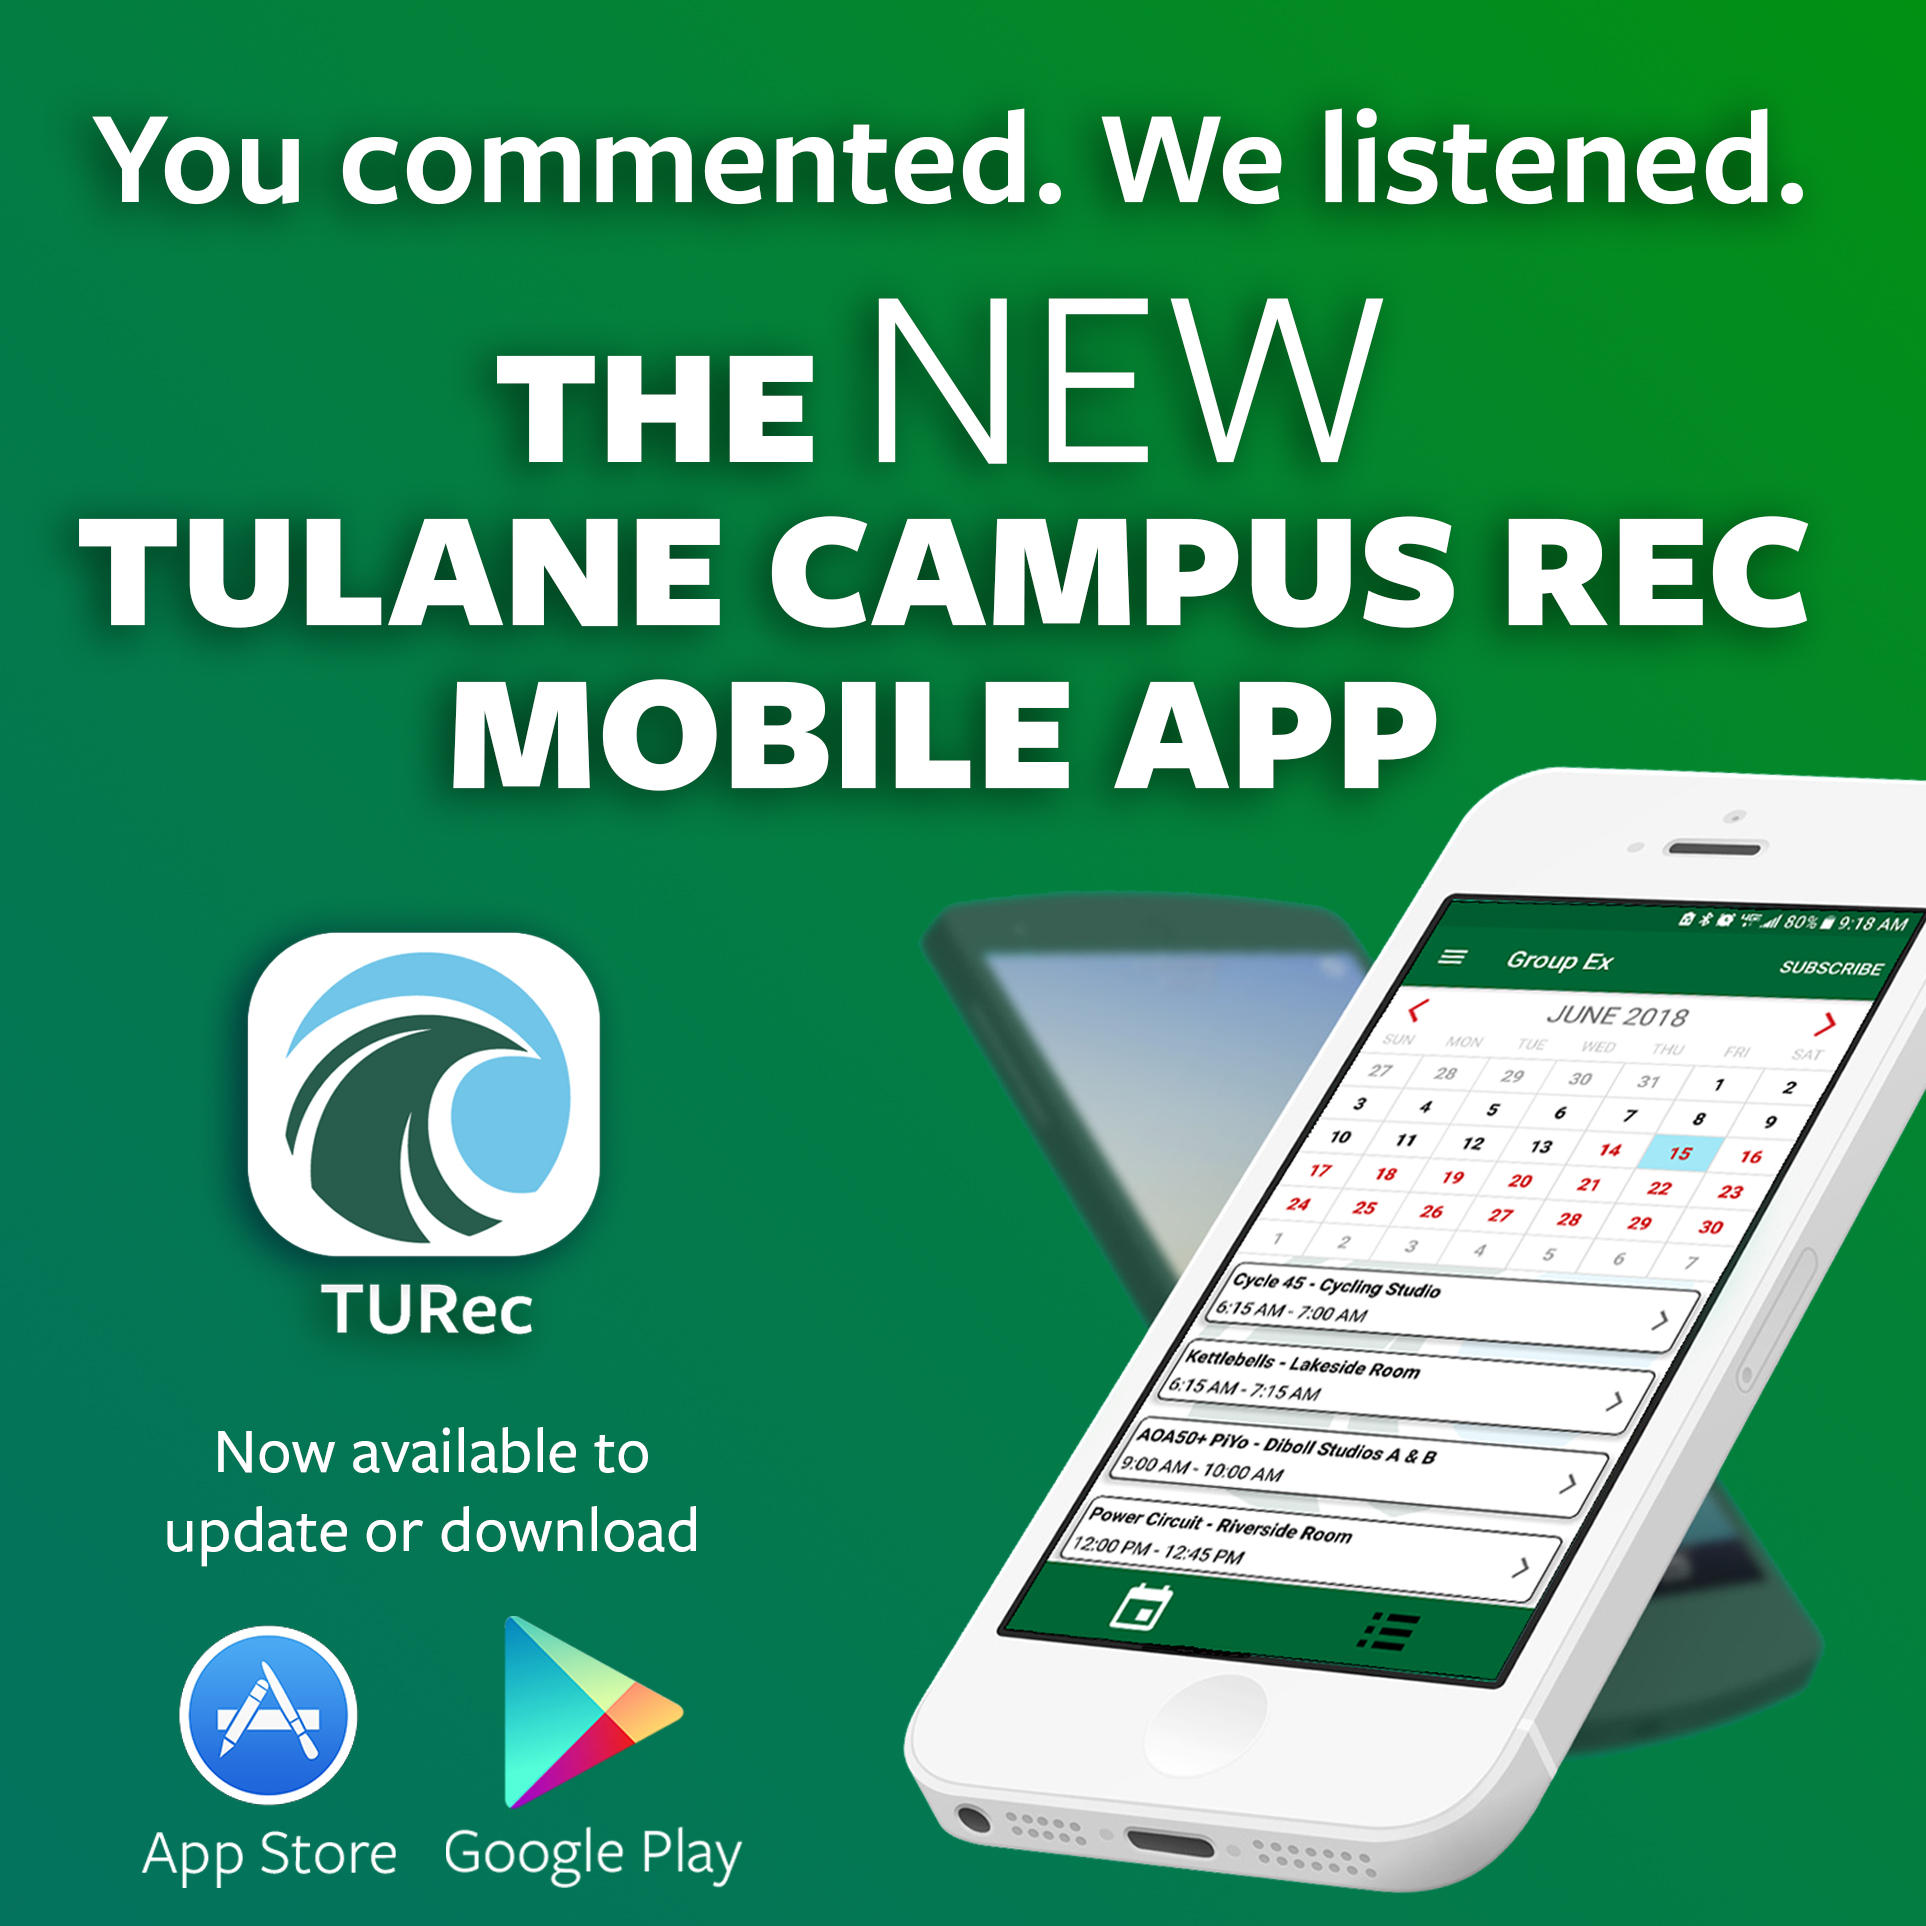 Follow this link to download the new Tulane Campus Recreation Mobile App